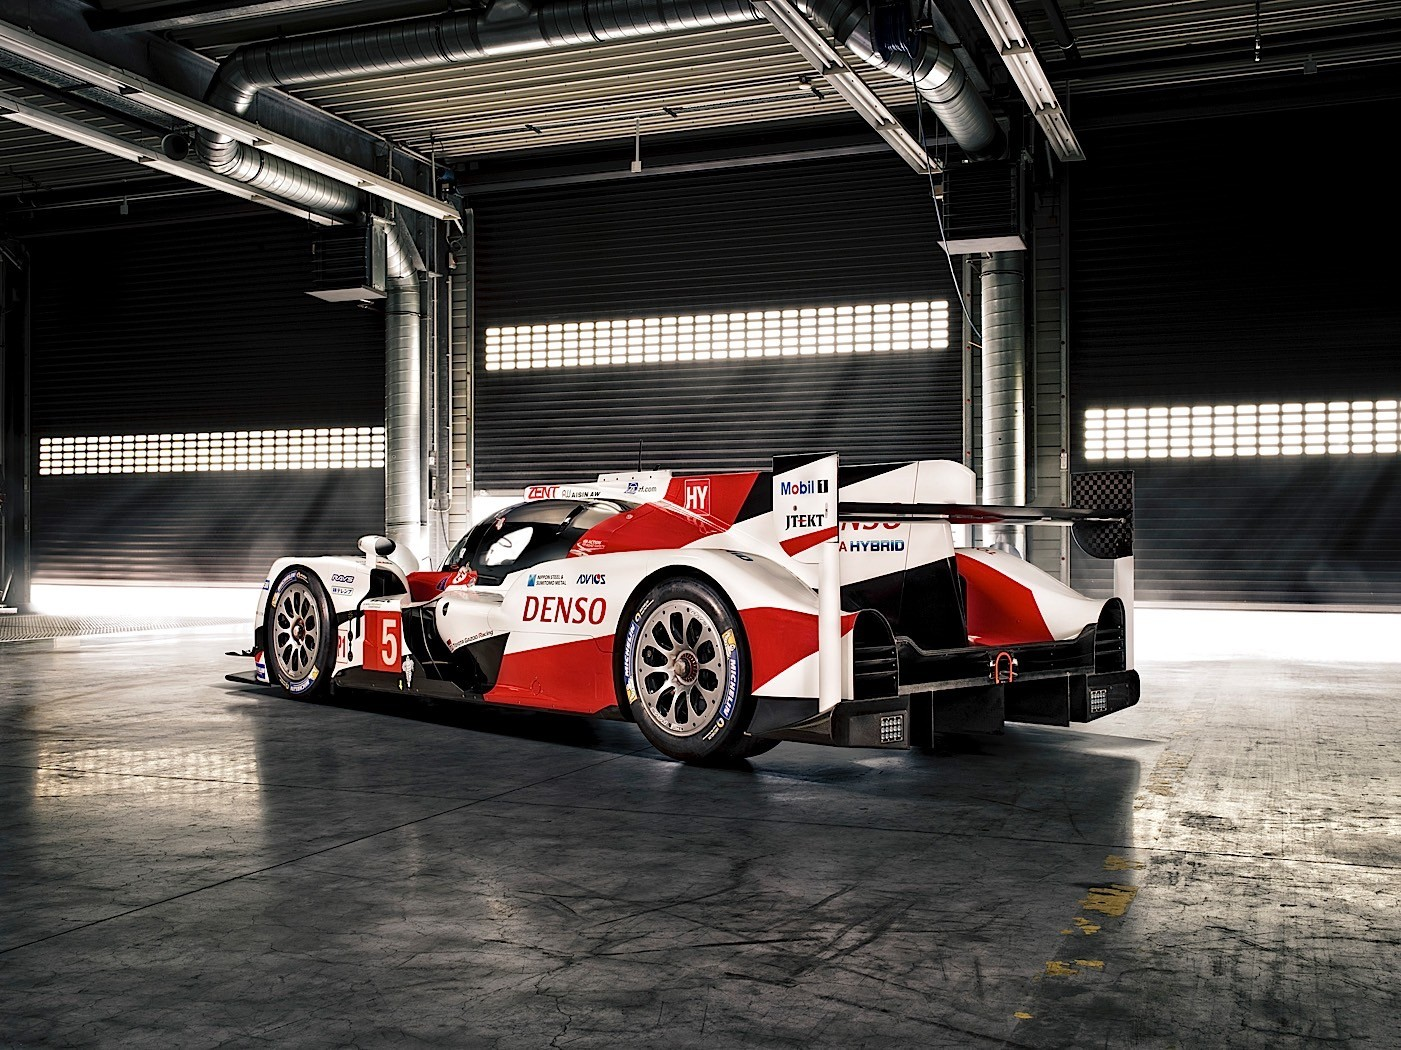 2016 Toyota Ts050 Hybrid Is Latest Lmp1 Le Mans Racer To